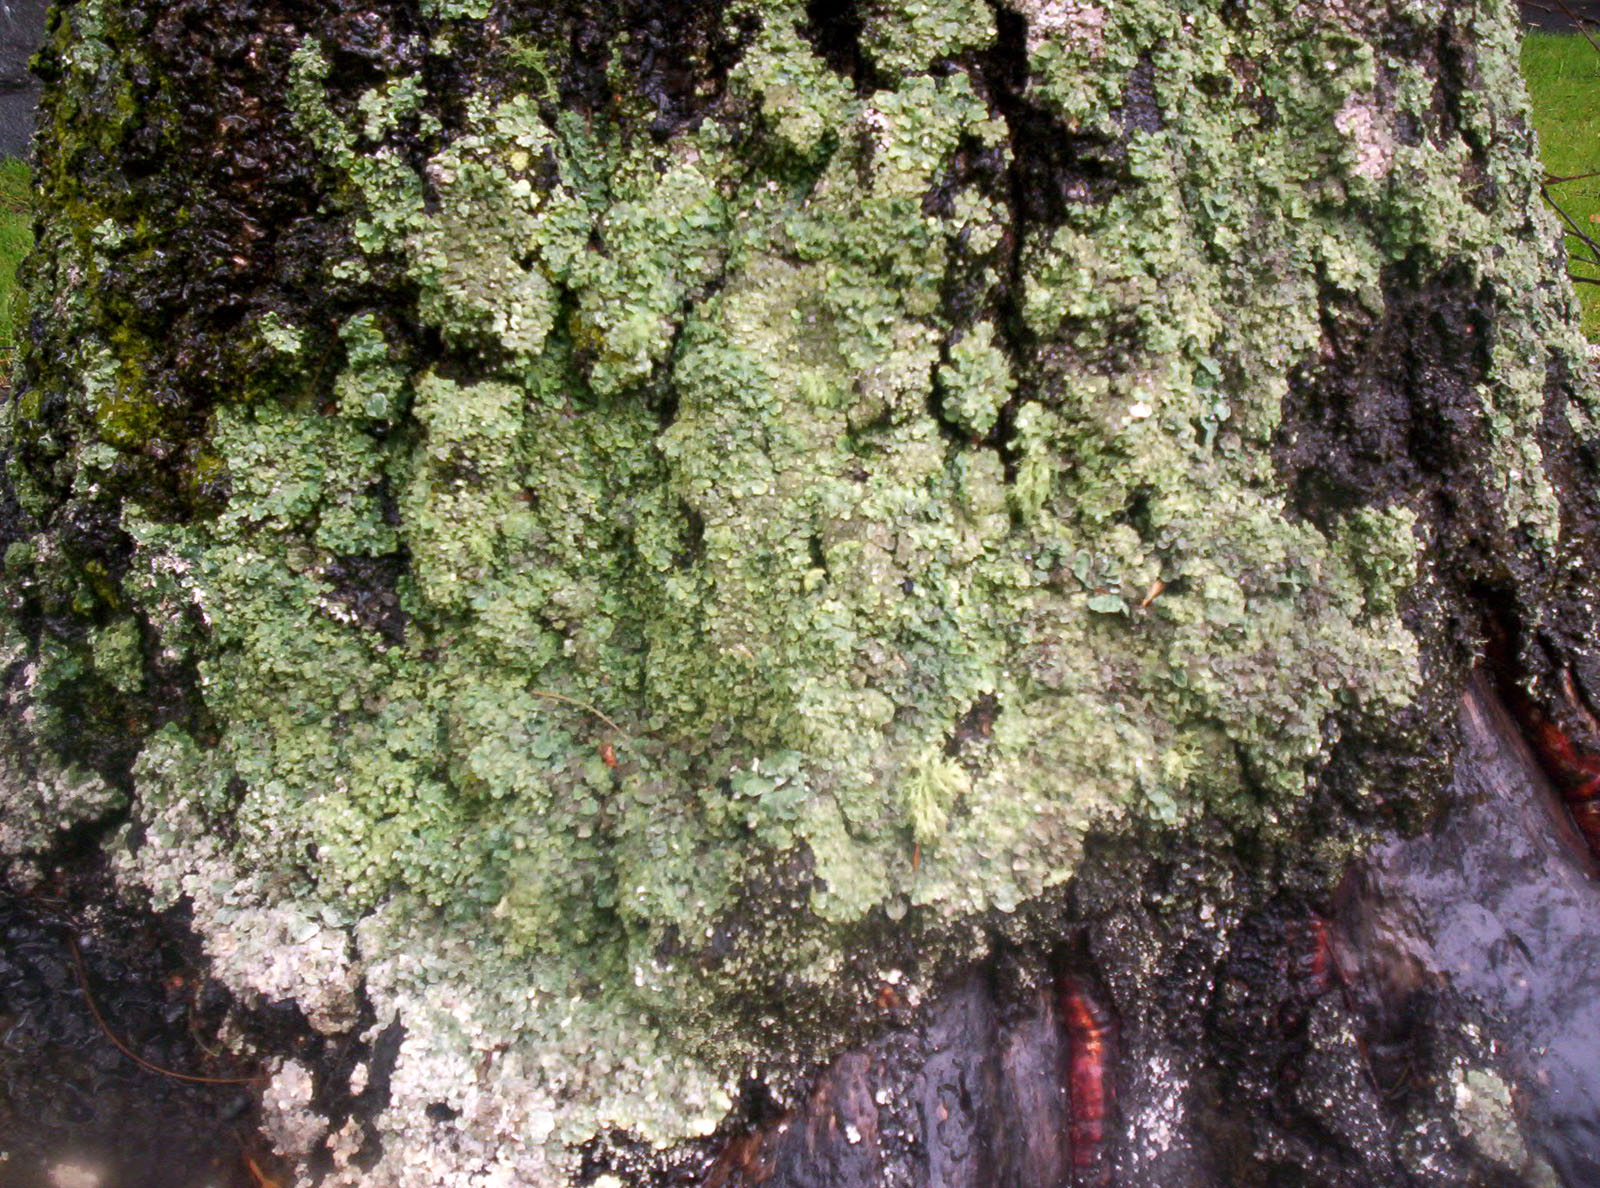 Lichen on West Facing Silver Birch 2, Lichen, Wet, Trunk, Tree, HQ Photo